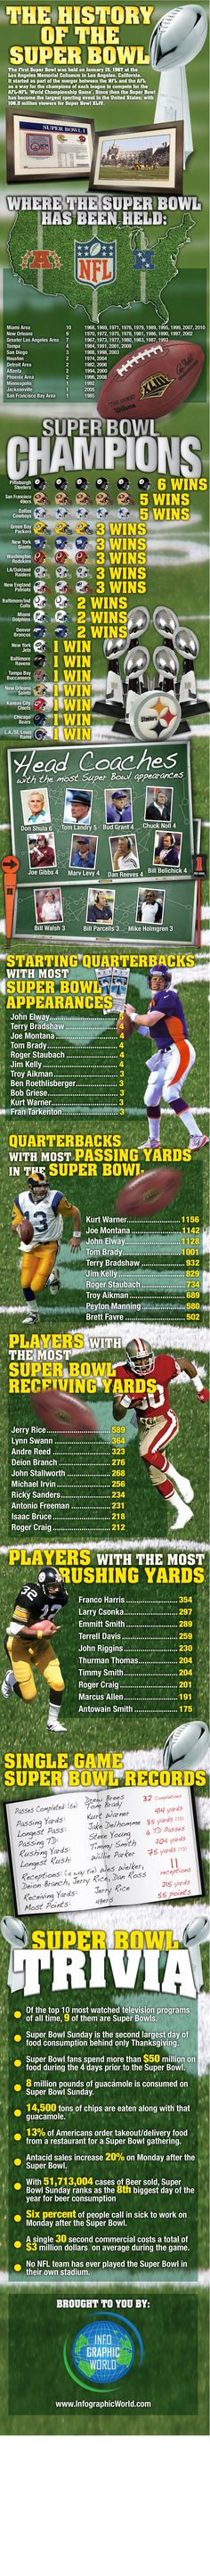 Massive History_of_the_Super_Bowl Infographic - a larger-than-life image of a larger-than-life competition...